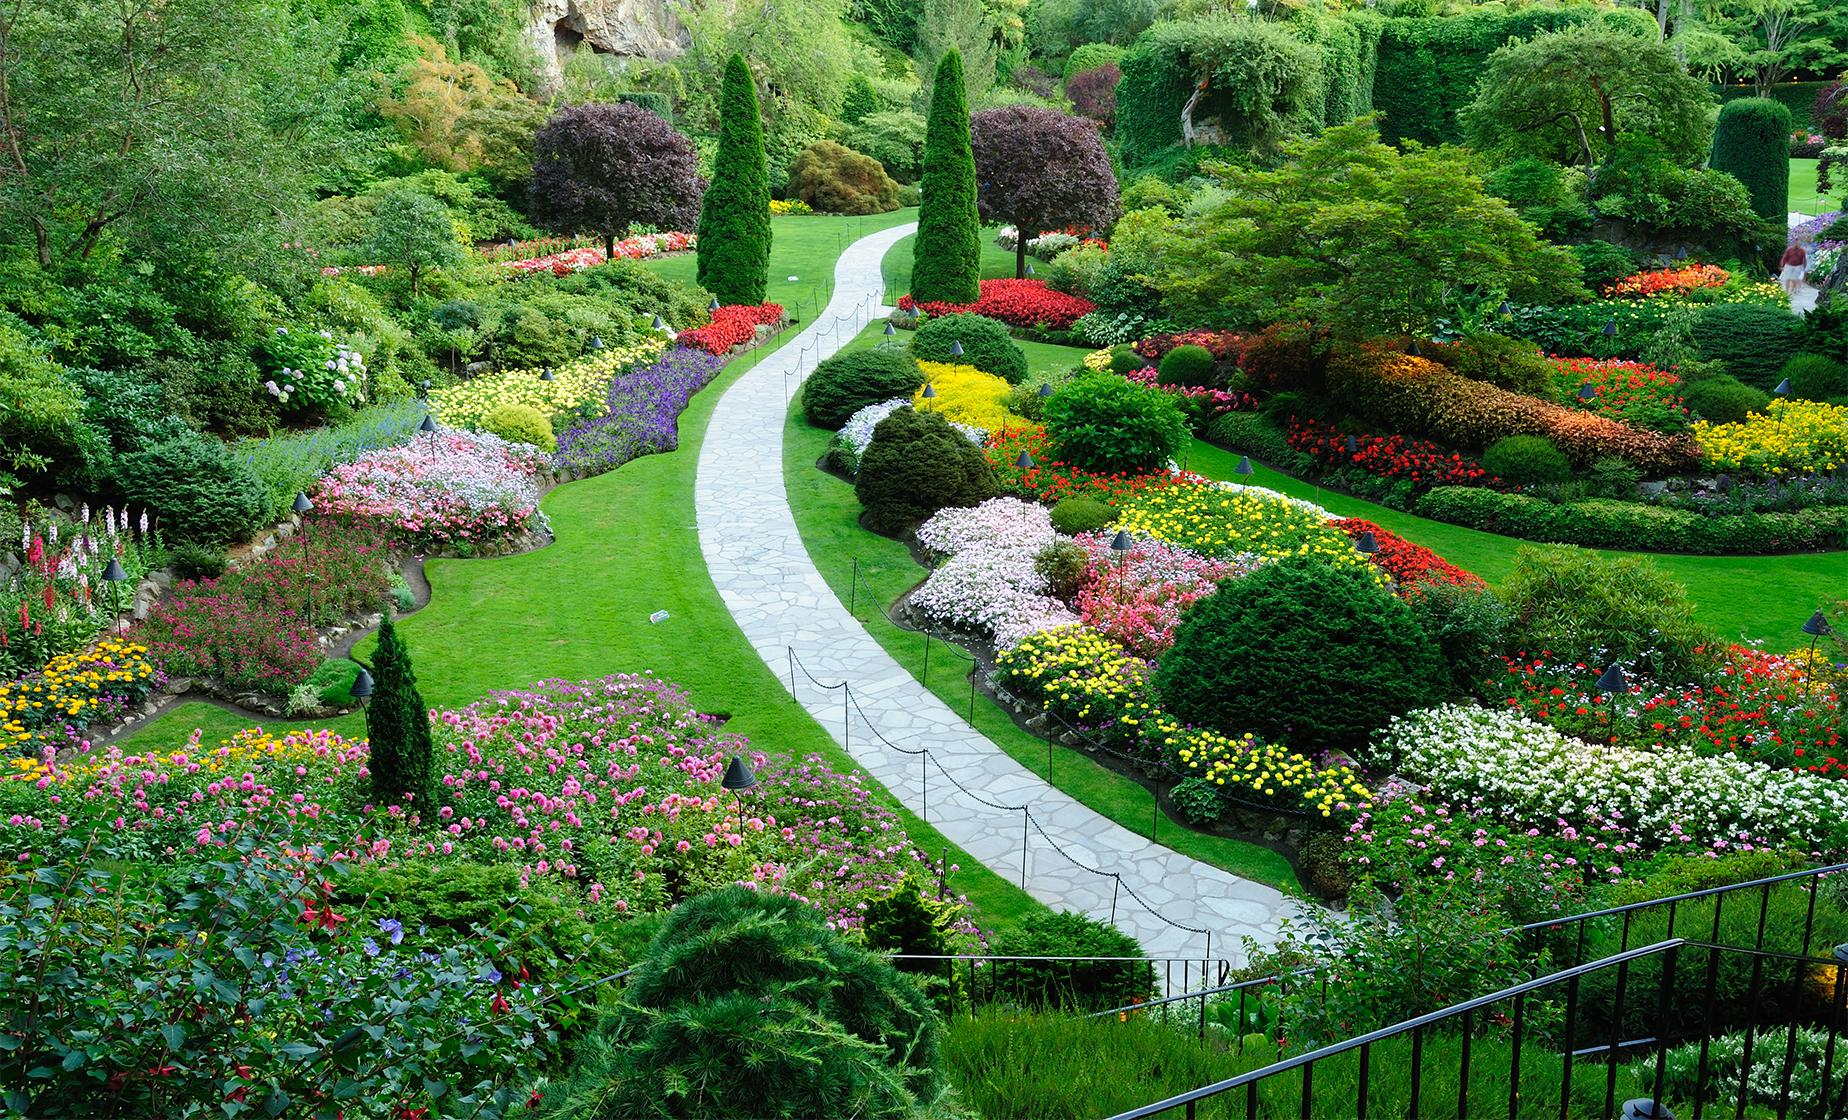 Butchart gardens day tour in victoria bc - Butchart gardens tour from victoria ...